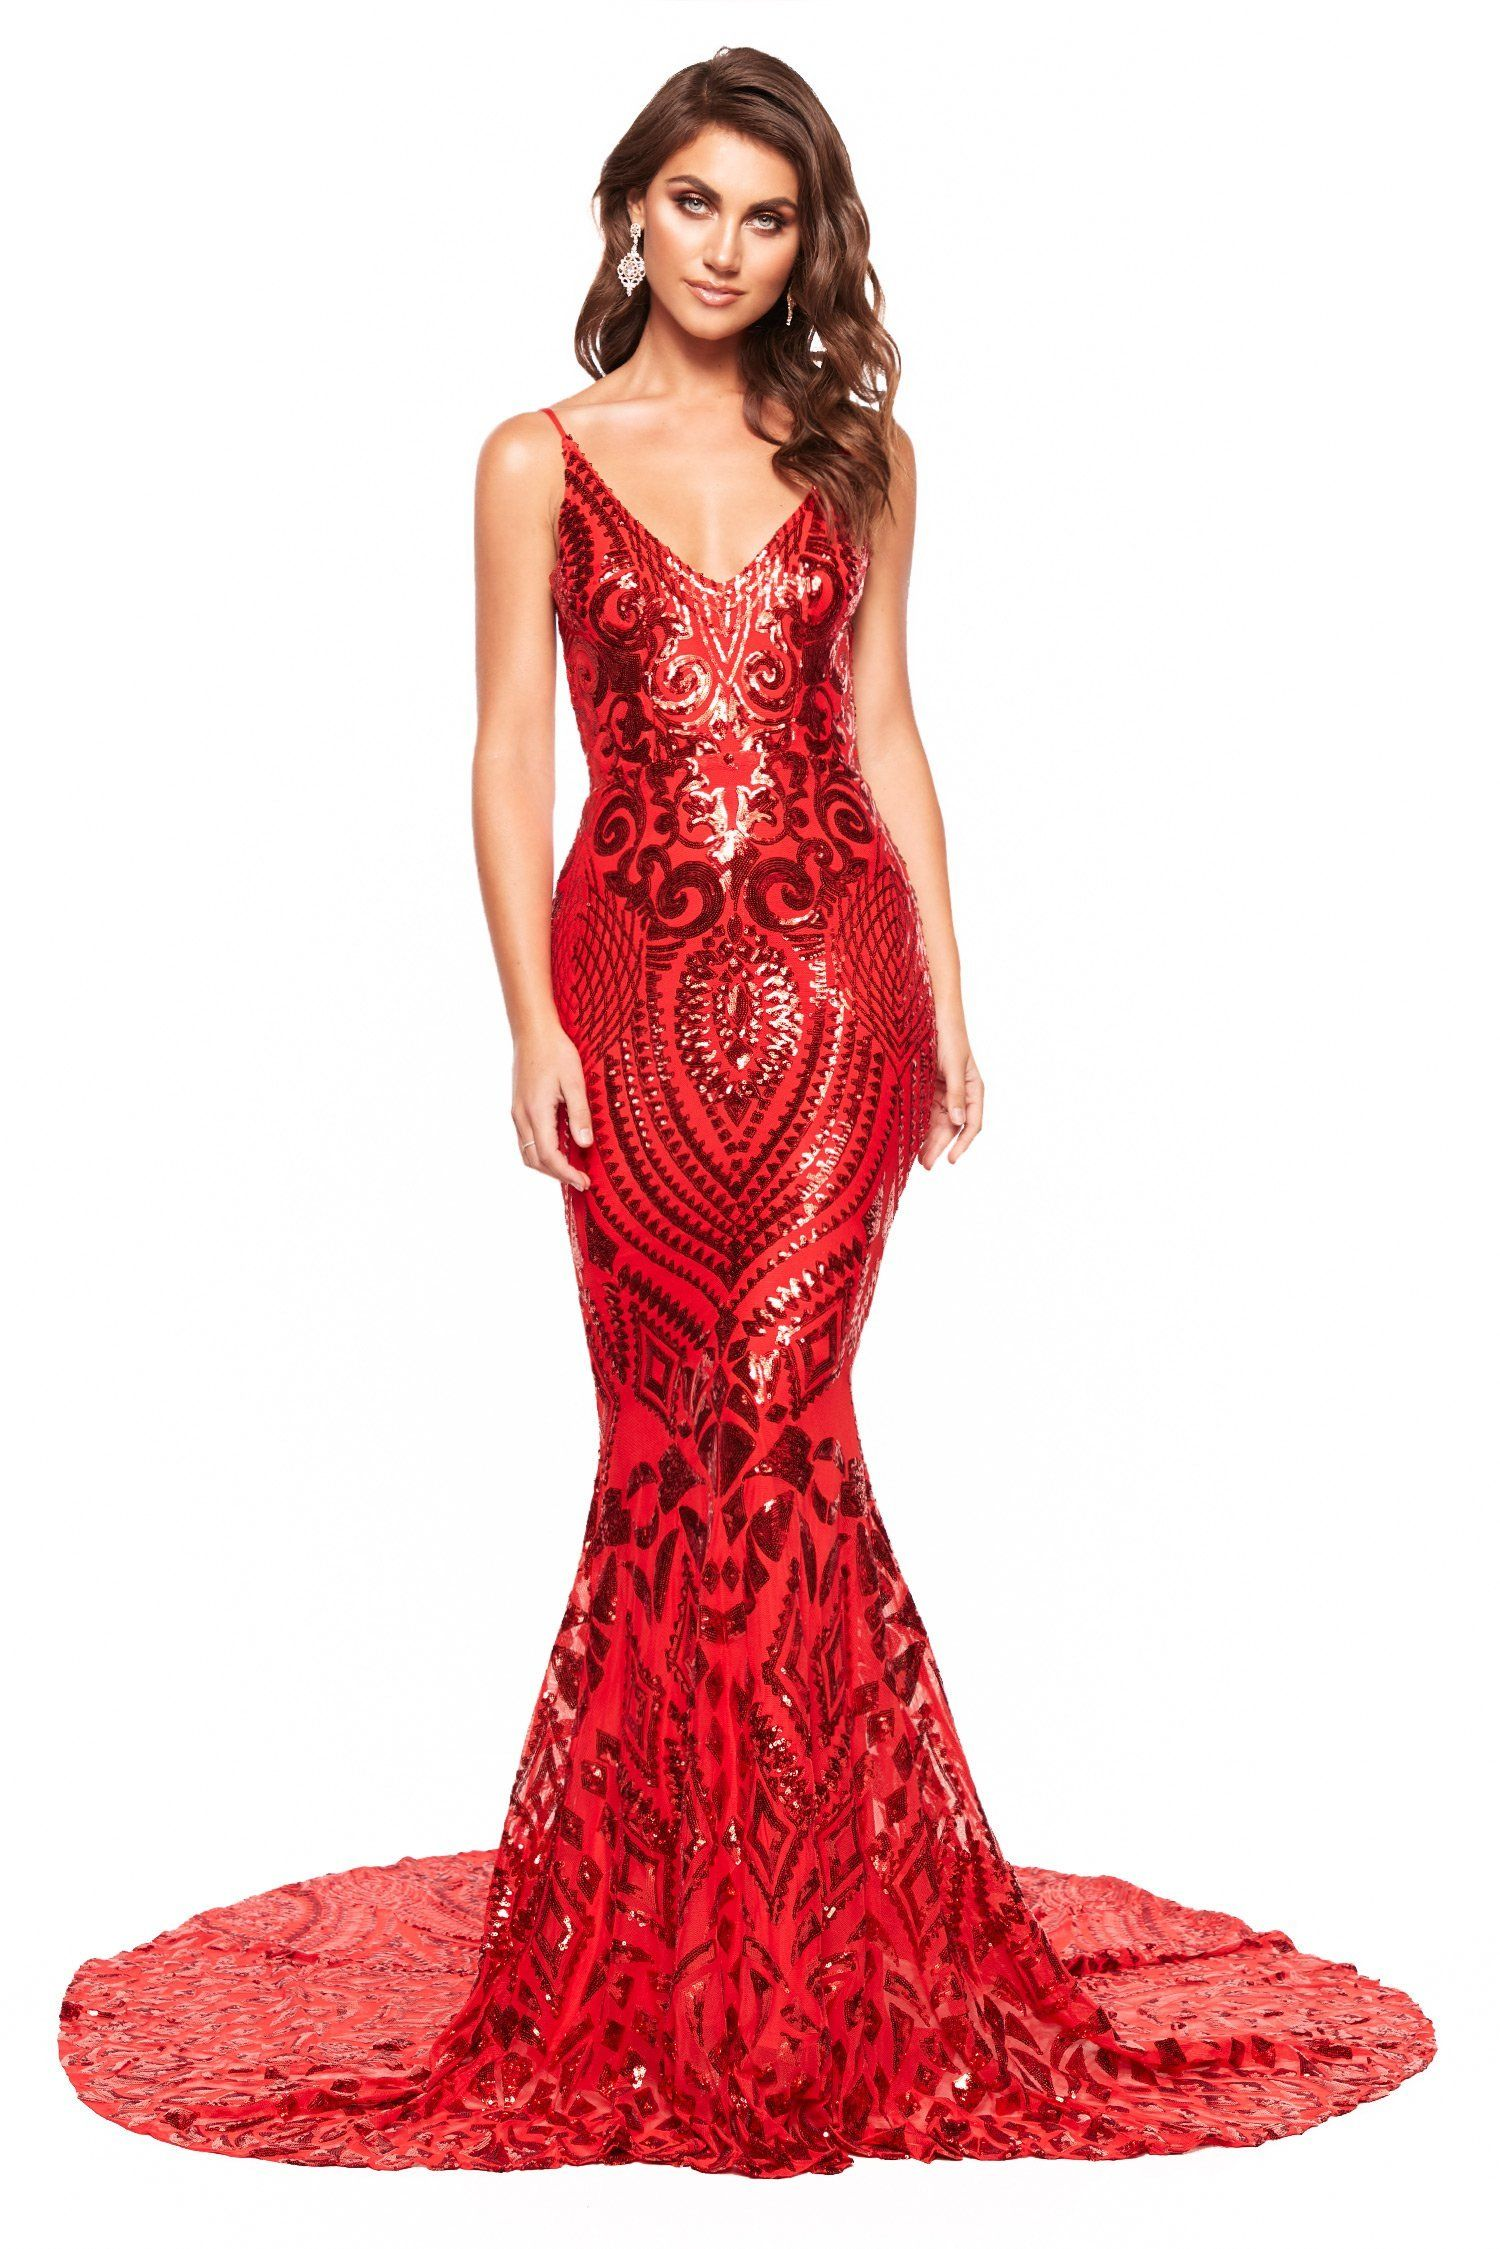 e69c5b1d A&N Luxe Mariana Sequin Gown - Red in 2019 | Prom dresses | Sequin ...